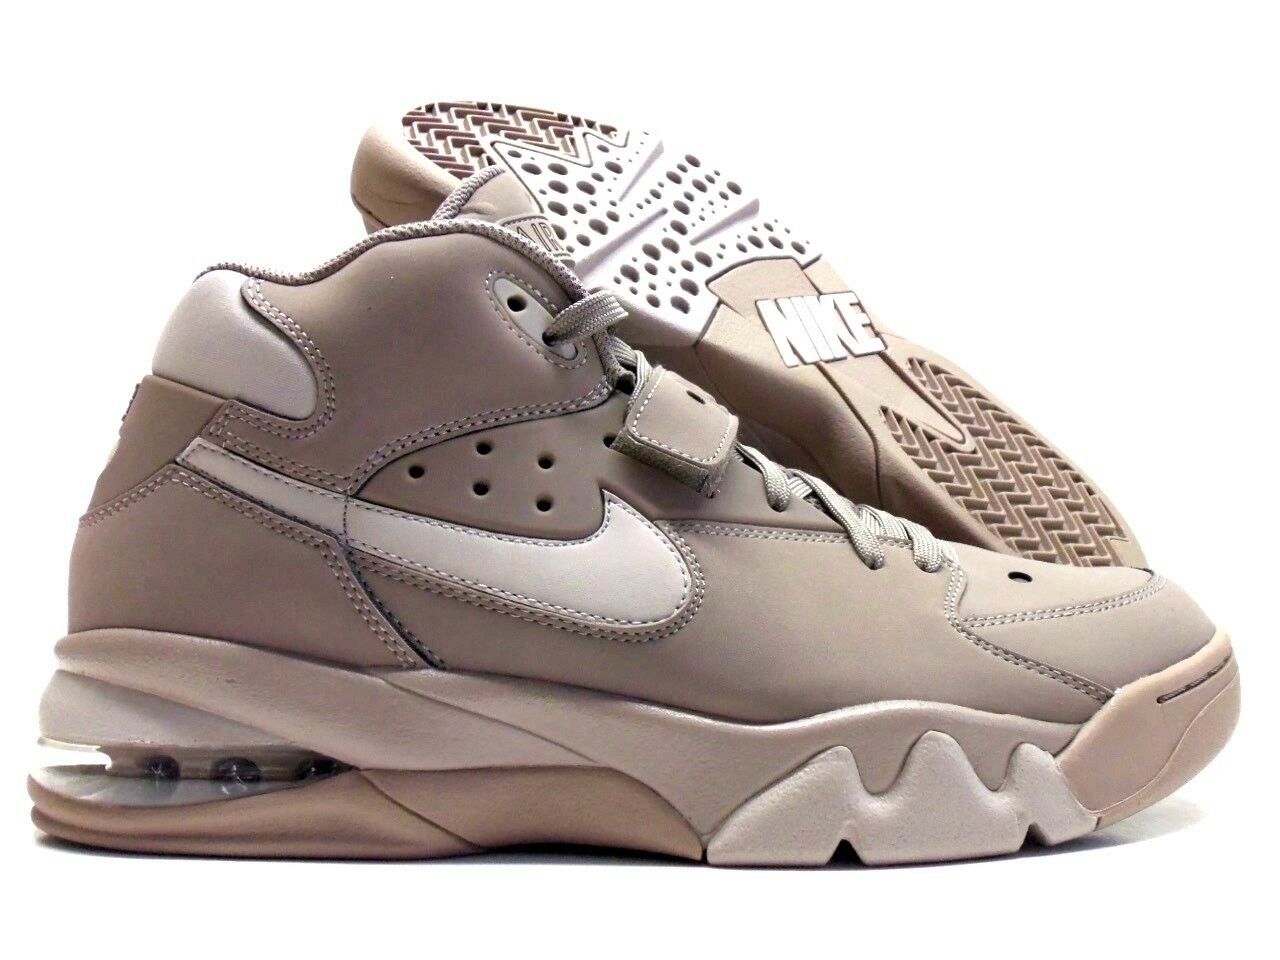 NIKE AIR FORCE MAX SEPIA STONE/MOON PARTICLE SIZE MEN'S 11 [AH5534-200]